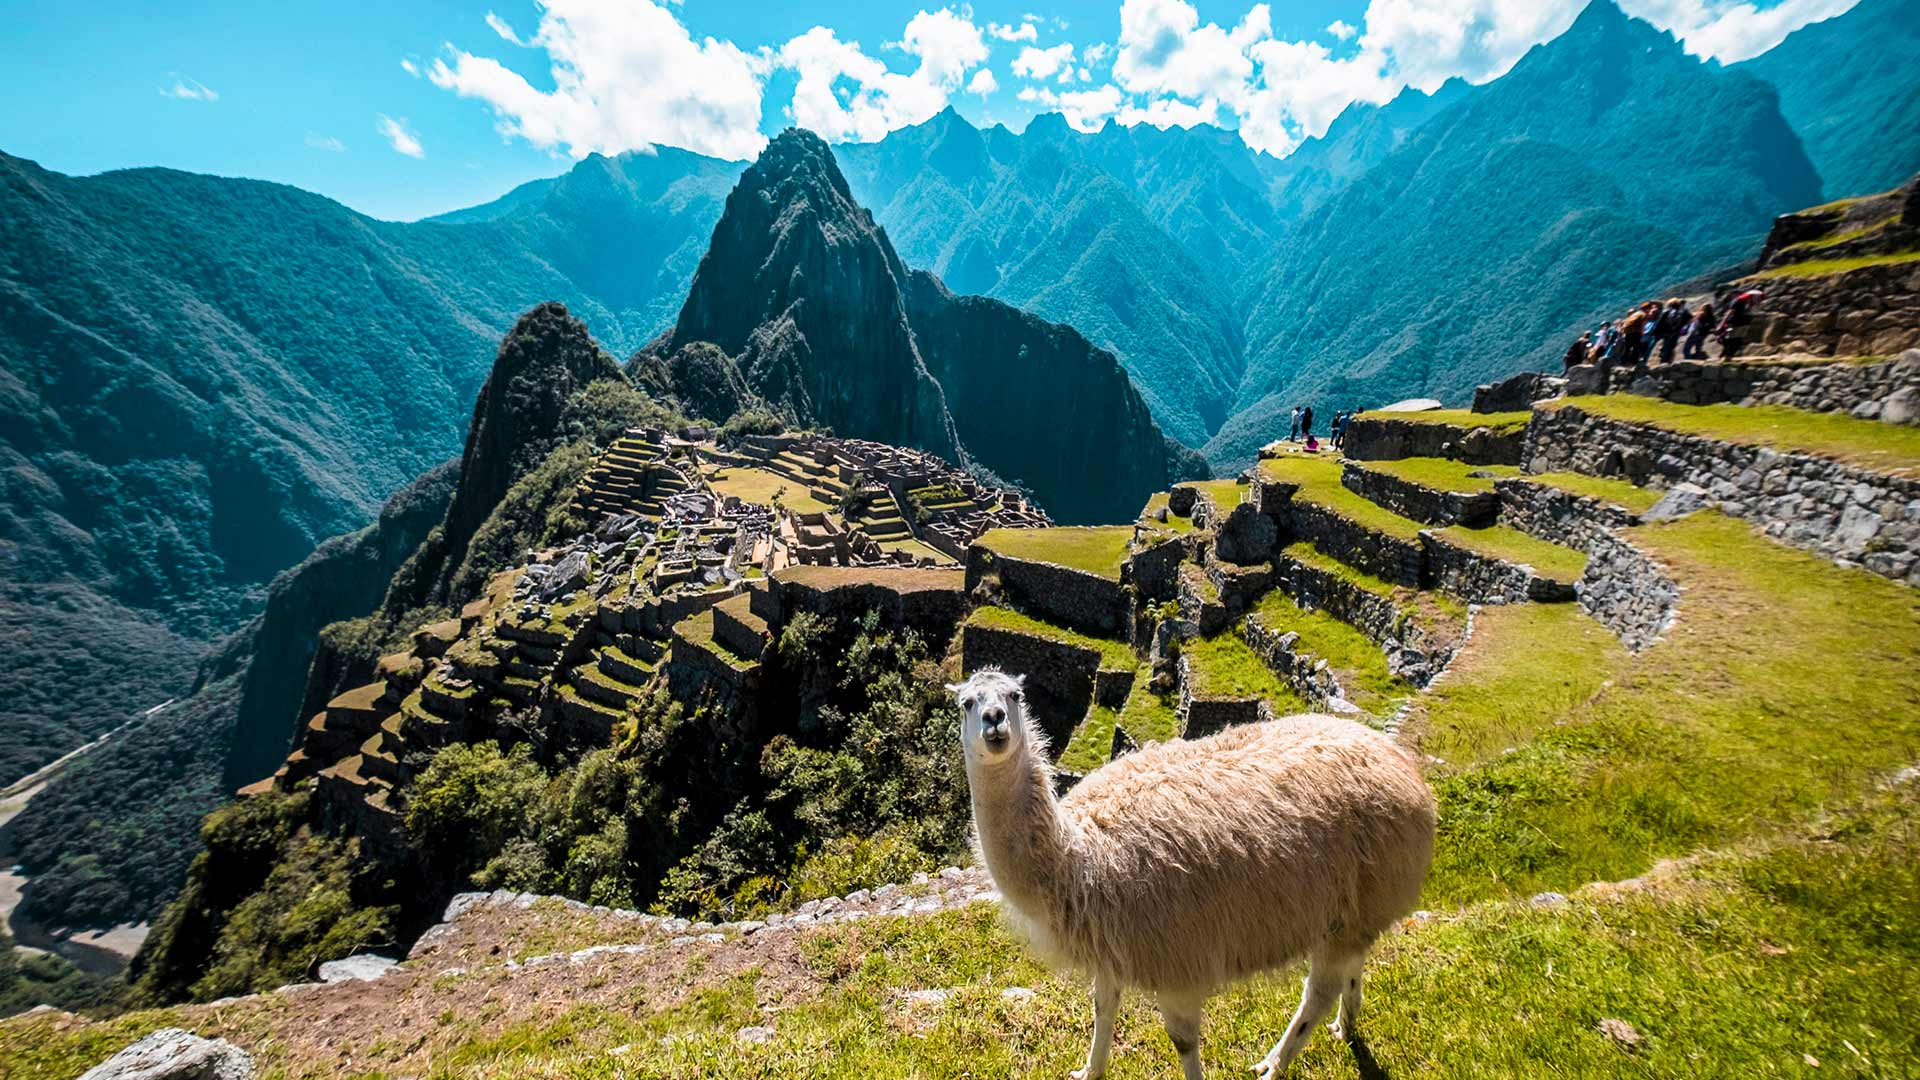 Panoramic photo of the archaeological site of Machu Picchu and a alpaca